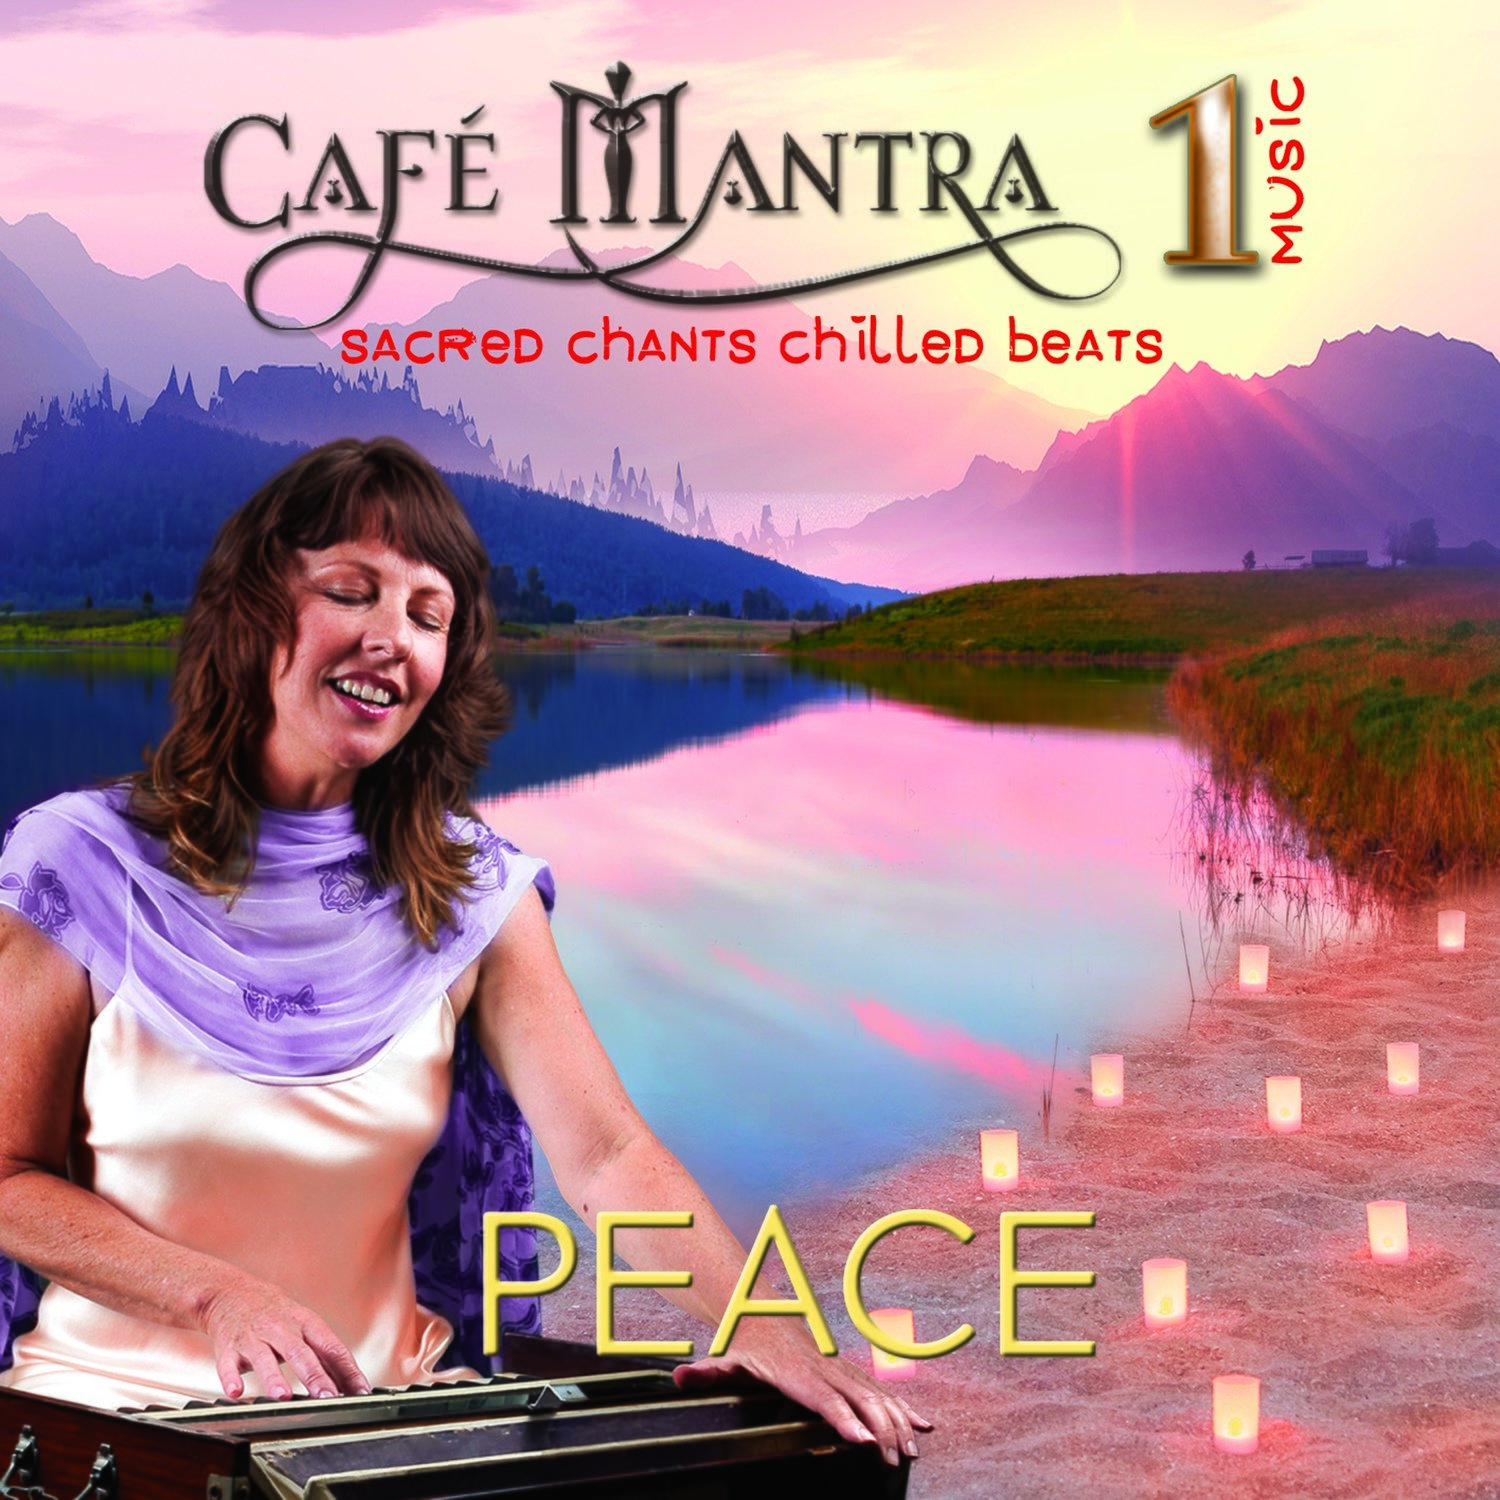 DOWNLOAD: Cafe Mantra Music1 PEACE